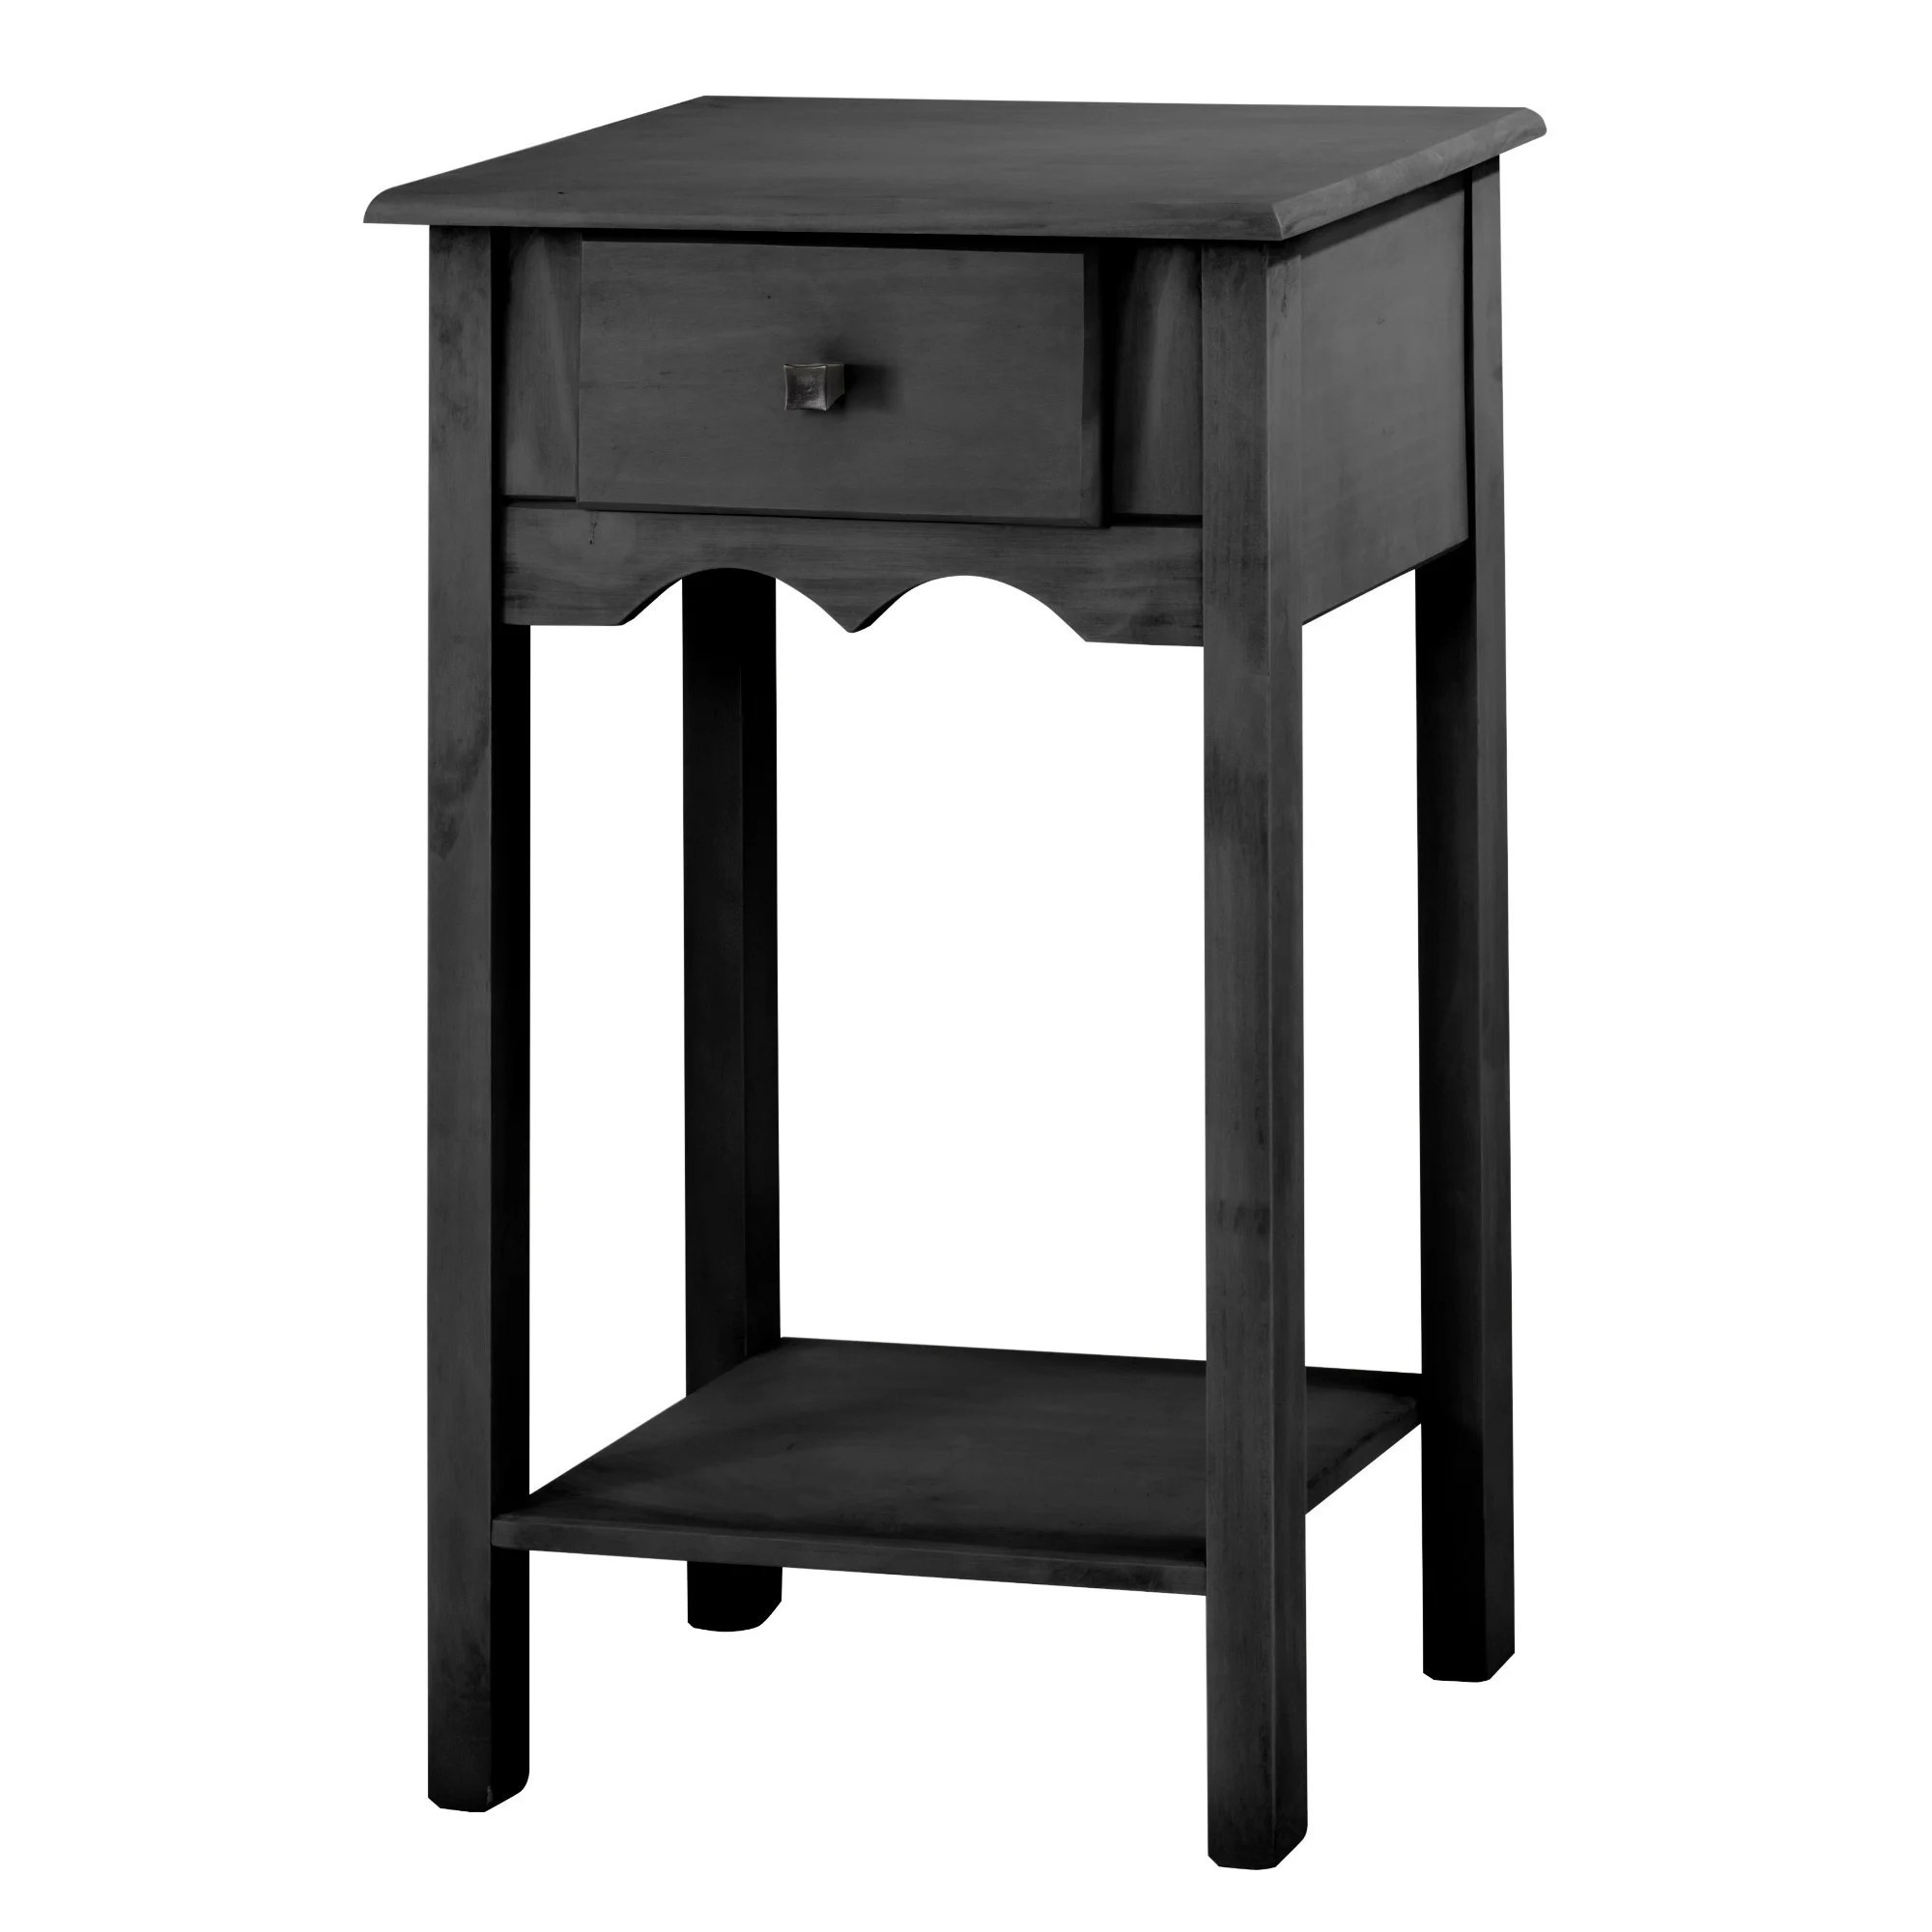 Black End Tables With Drawer Manhattan Comfort Jay 35 Inch Tall End Table With 1 Full Extension Drawer